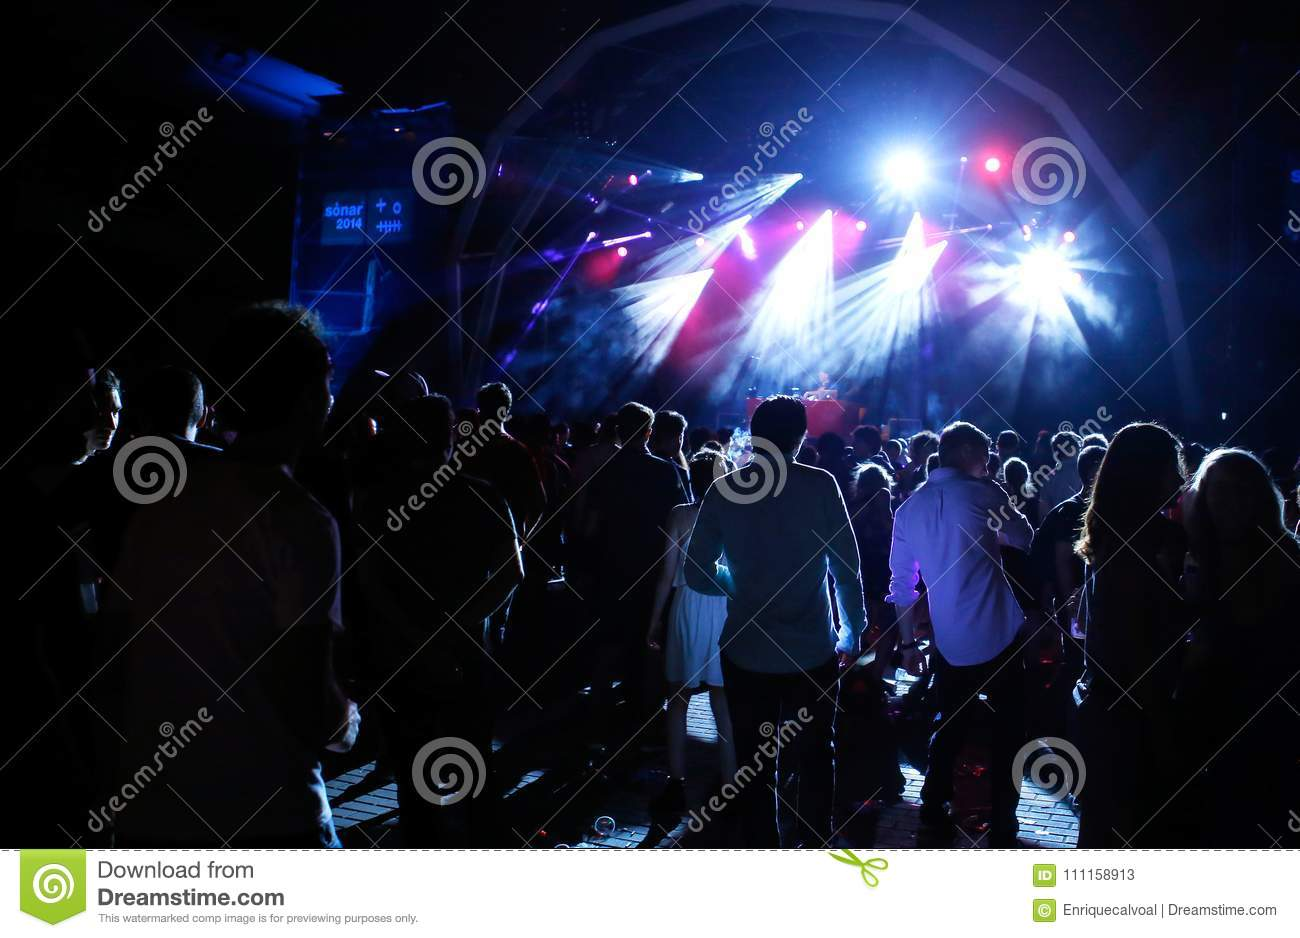 People watching live performance from back